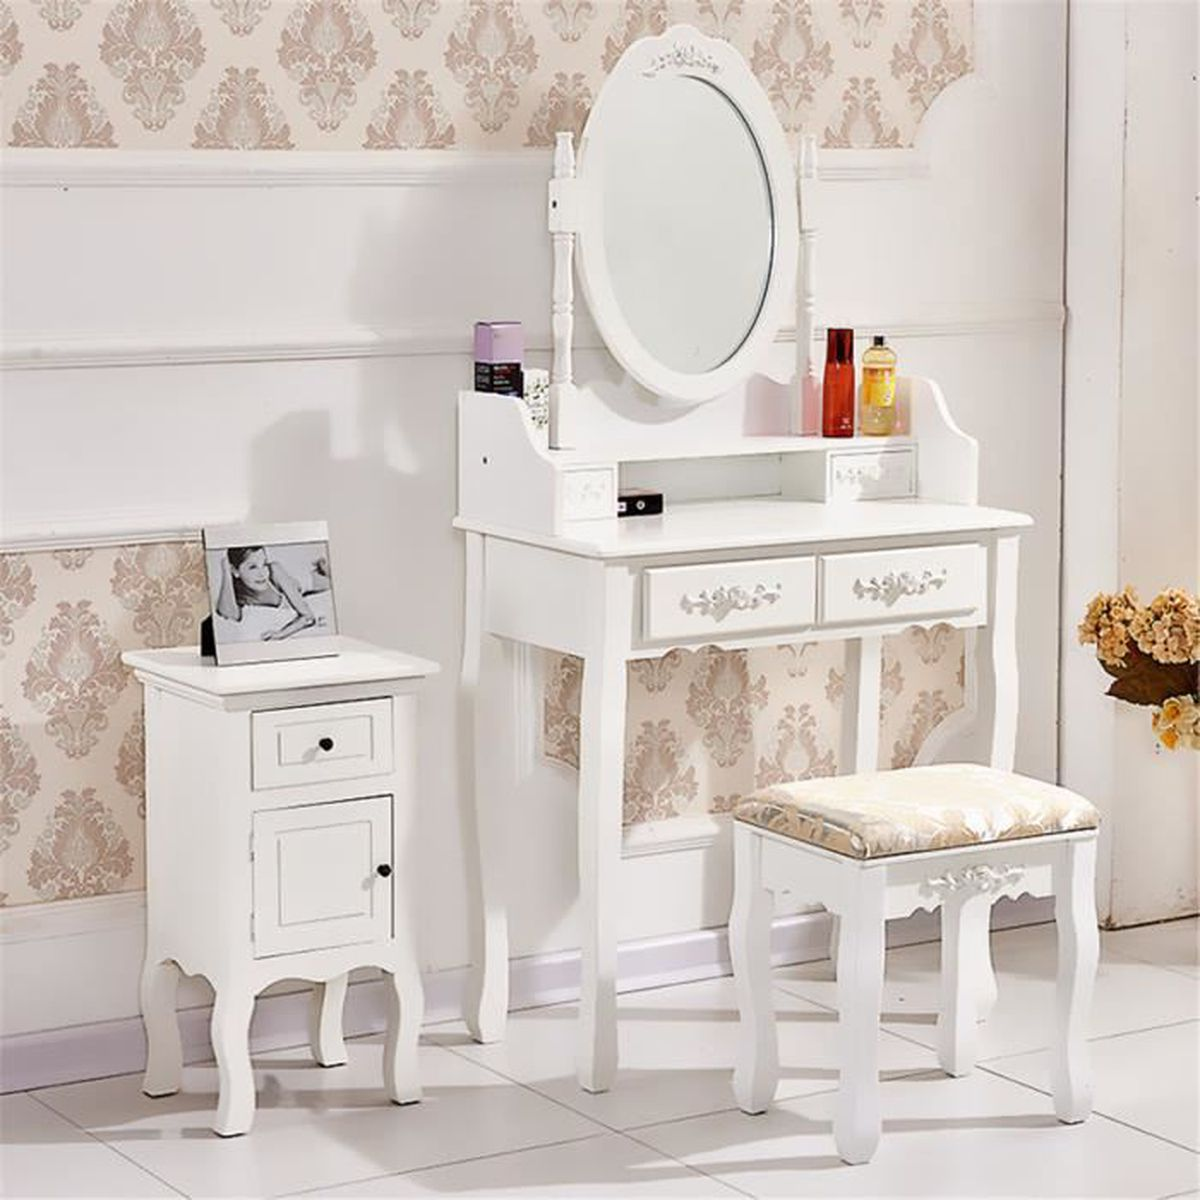 Coiffeuse blanche moderne meilleures images d for Achat miroir